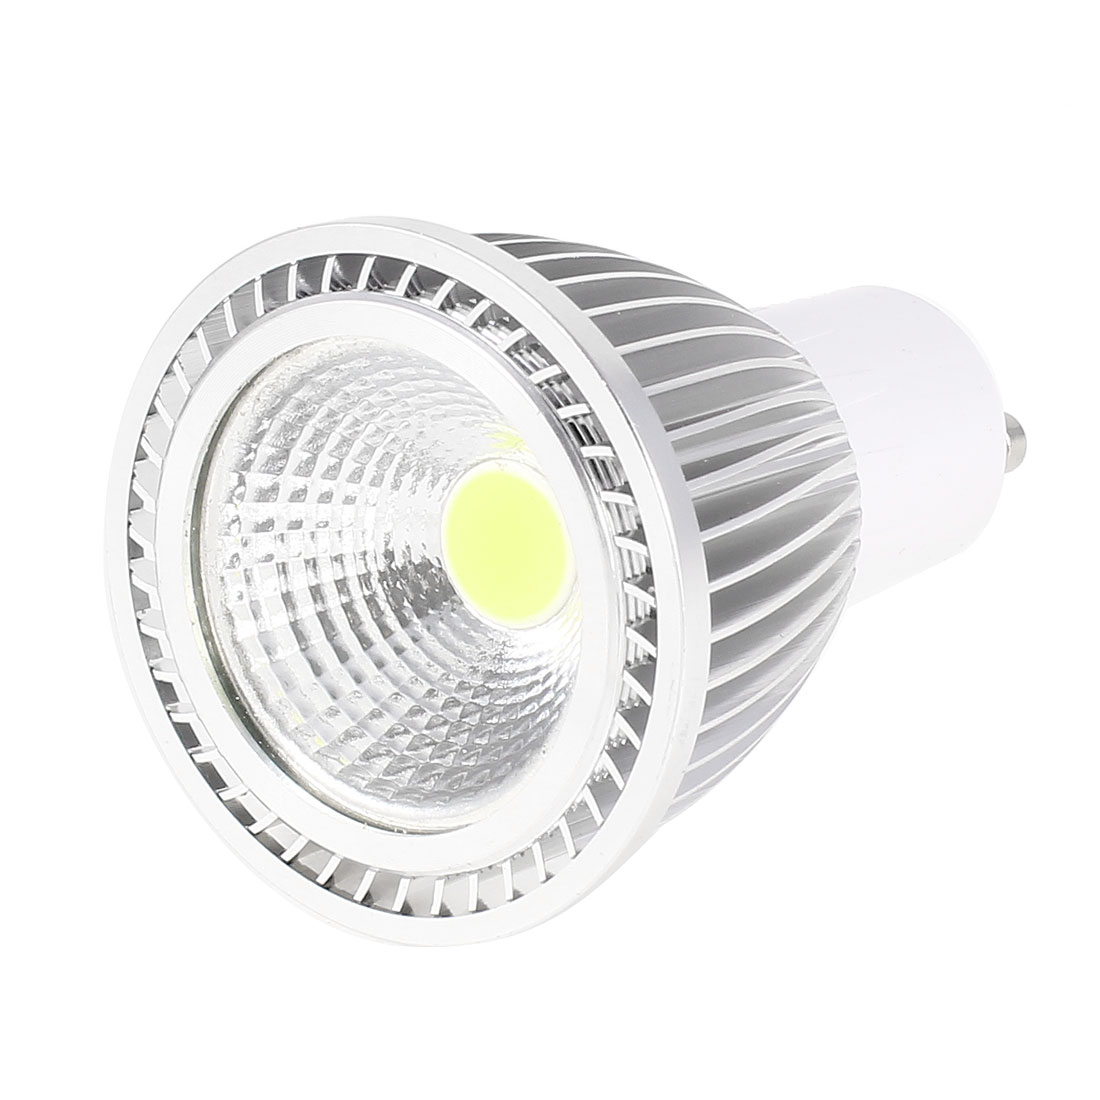 AC 85-265V GU10 Socket 5W White LED Energy Saving Ceiling COB Spotlight Bulb